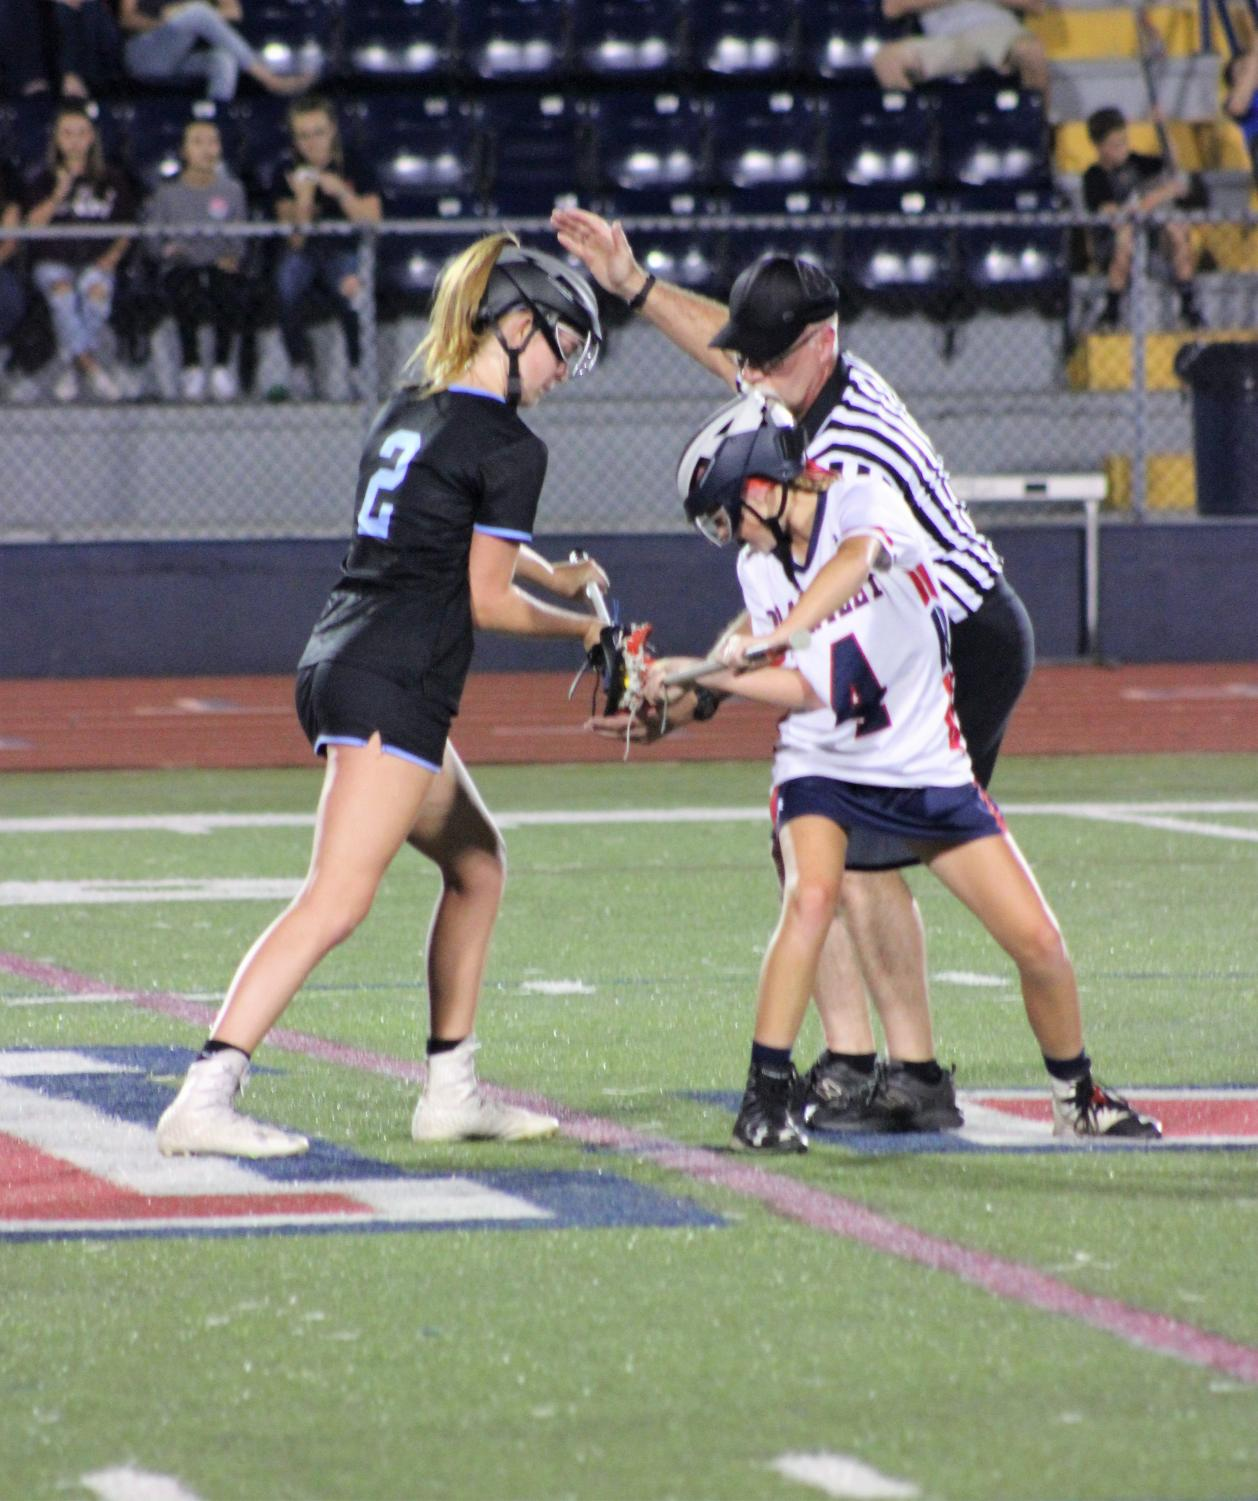 Midfielder Katie Williams sets up for a face off against Lake Brantley. The girls won 12-1, securing their spot in the SAC Championships.